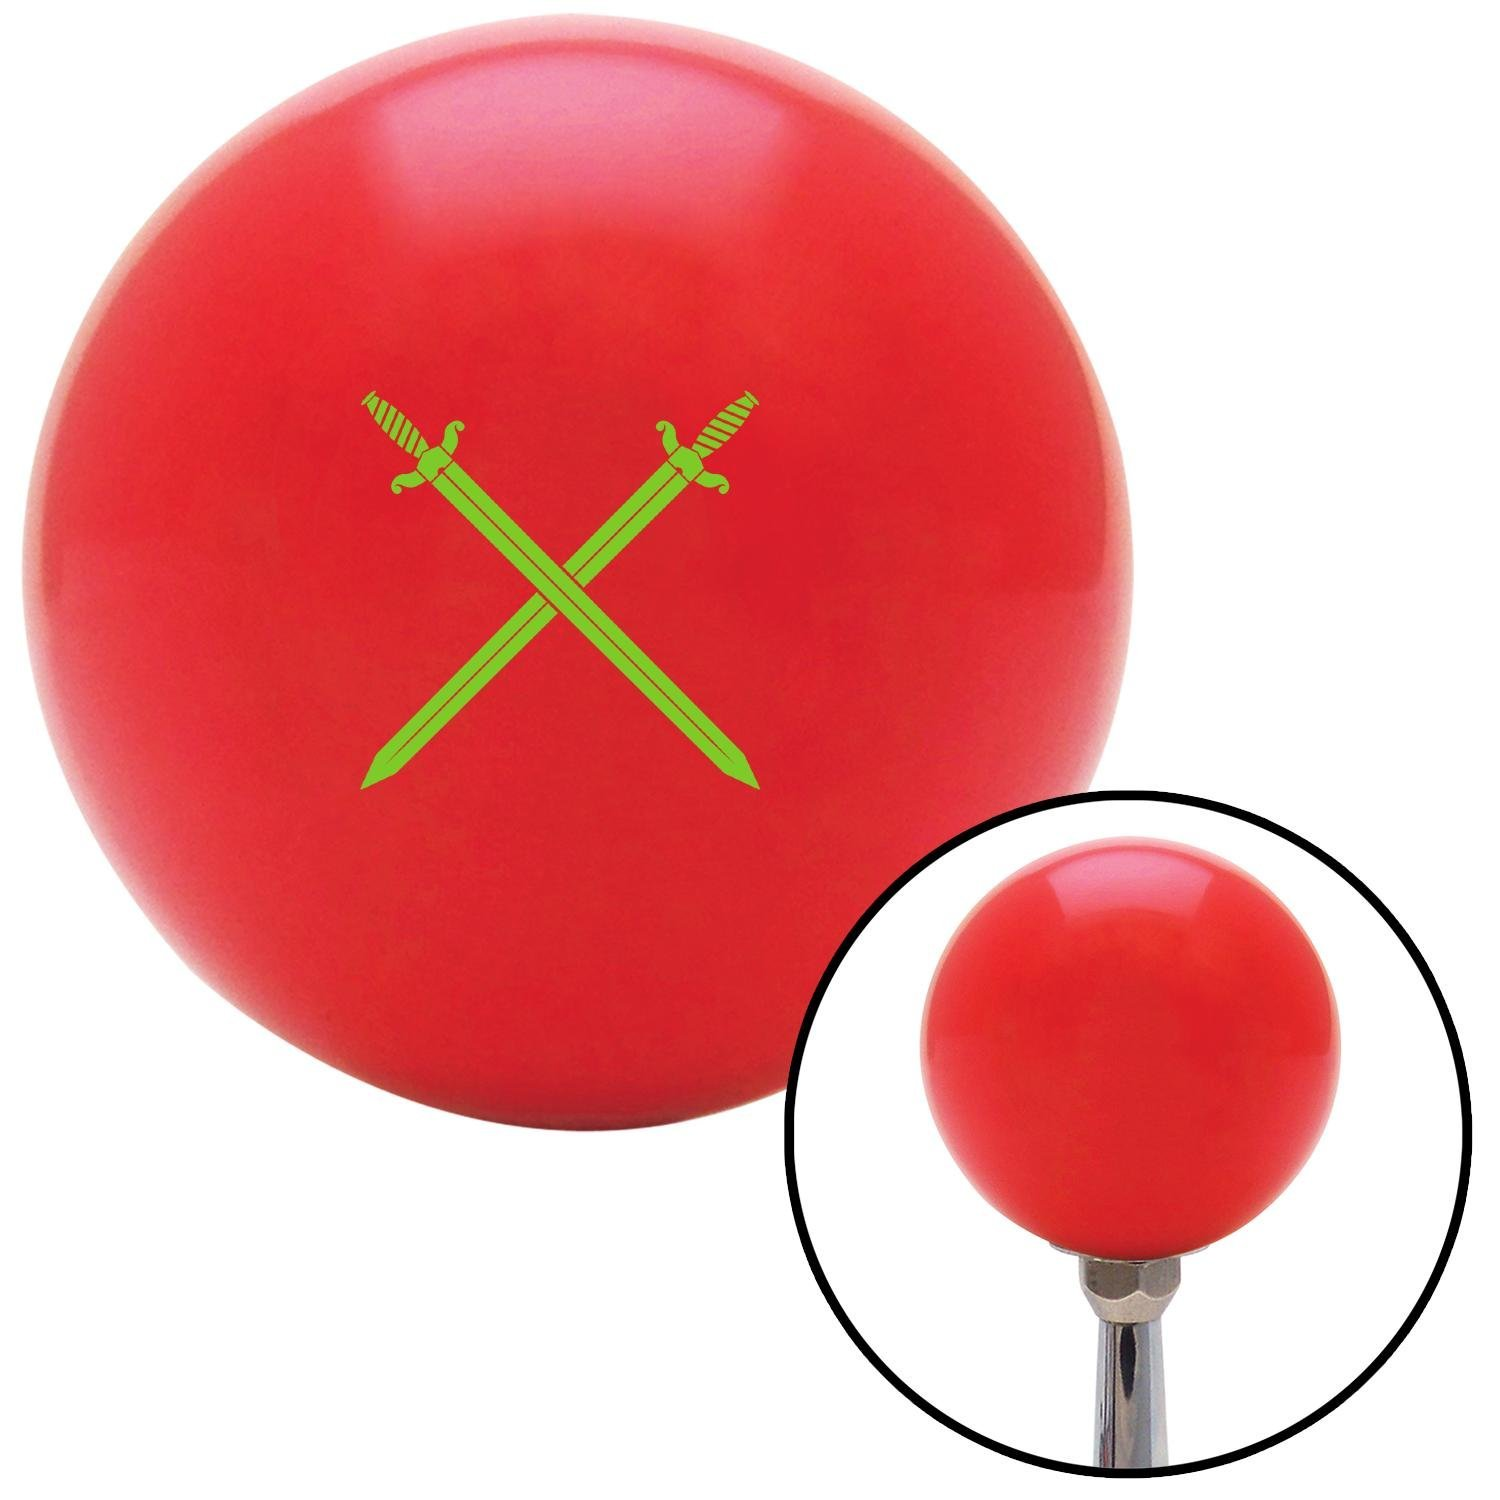 American Shifter 102722 Red Shift Knob with M16 x 1.5 Insert Green Knight Swords